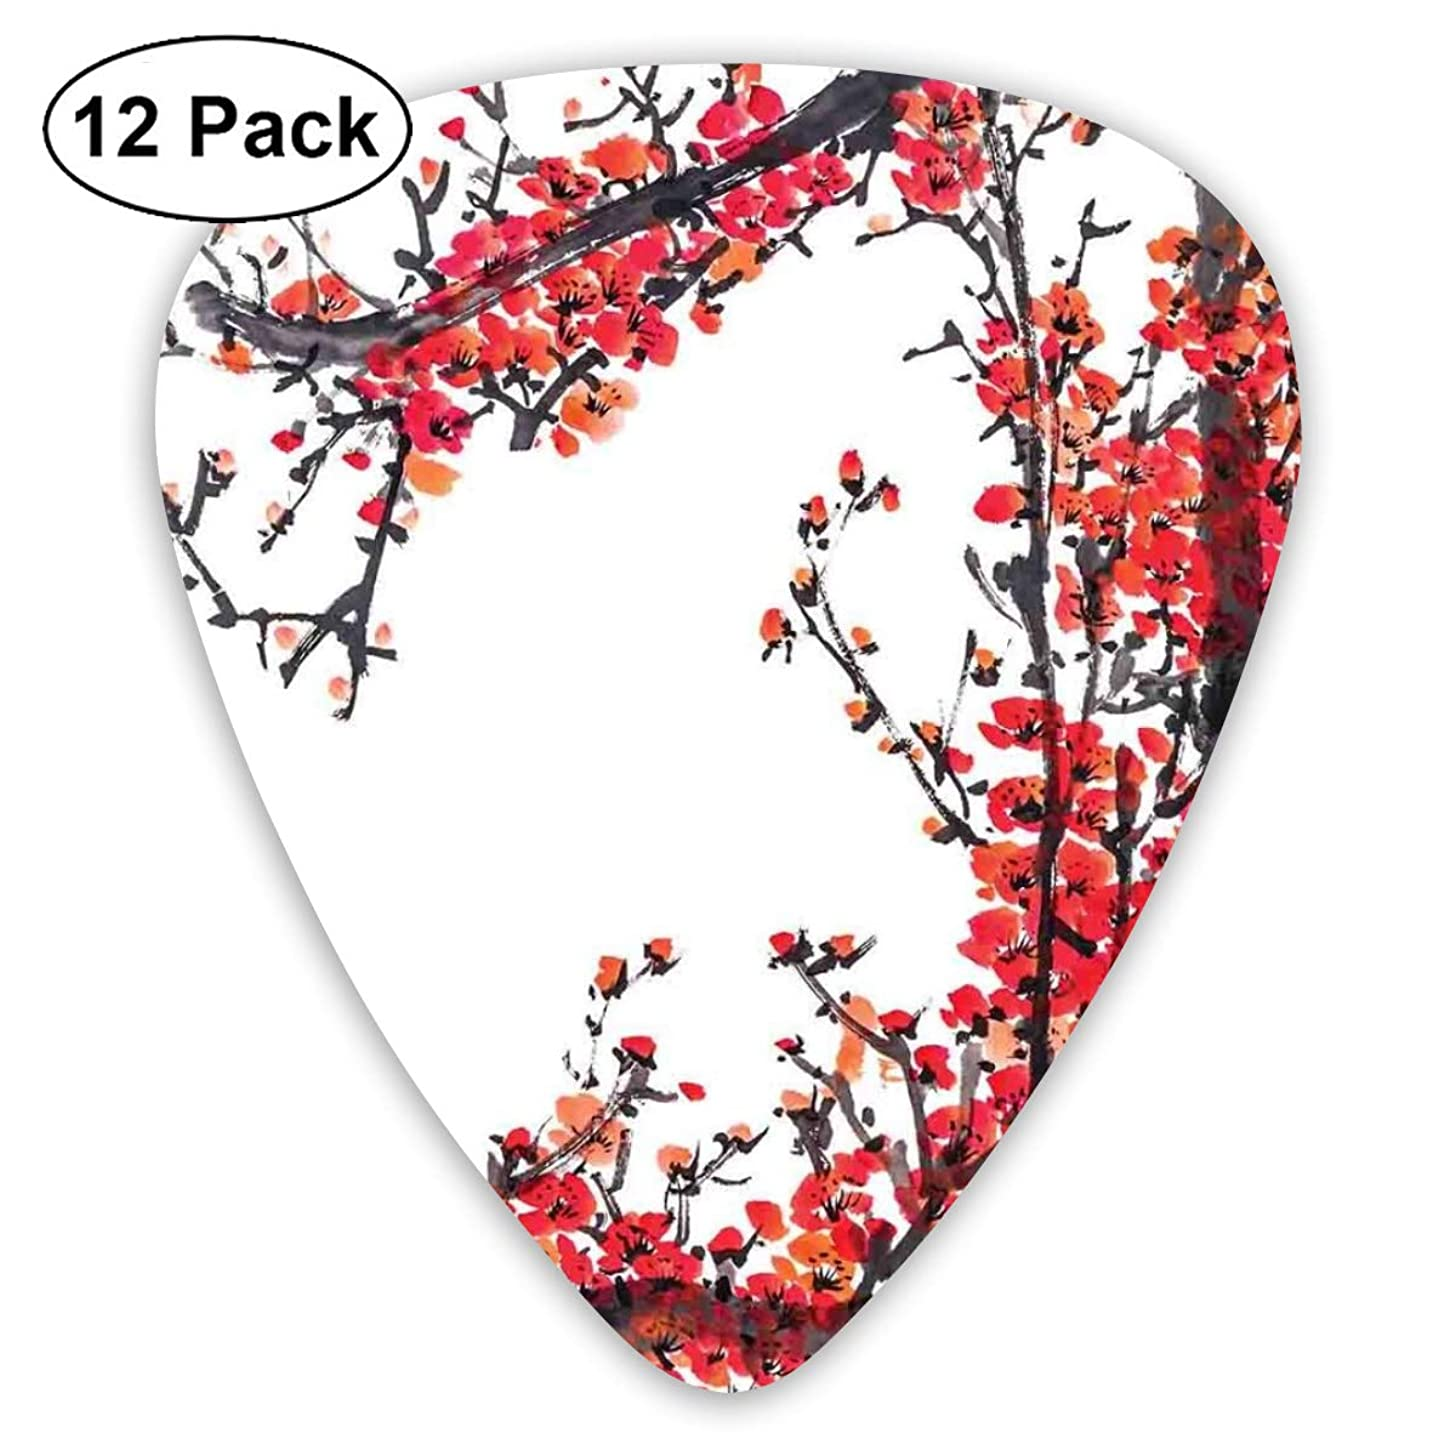 Guitar Picks - Abstract Art Colorful Designs,Japanese Cherry Blossom Sakura Branch Made With Brush Artsy Image,Unique Guitar Gift,For Bass Electric & Acoustic Guitars-12 Pack